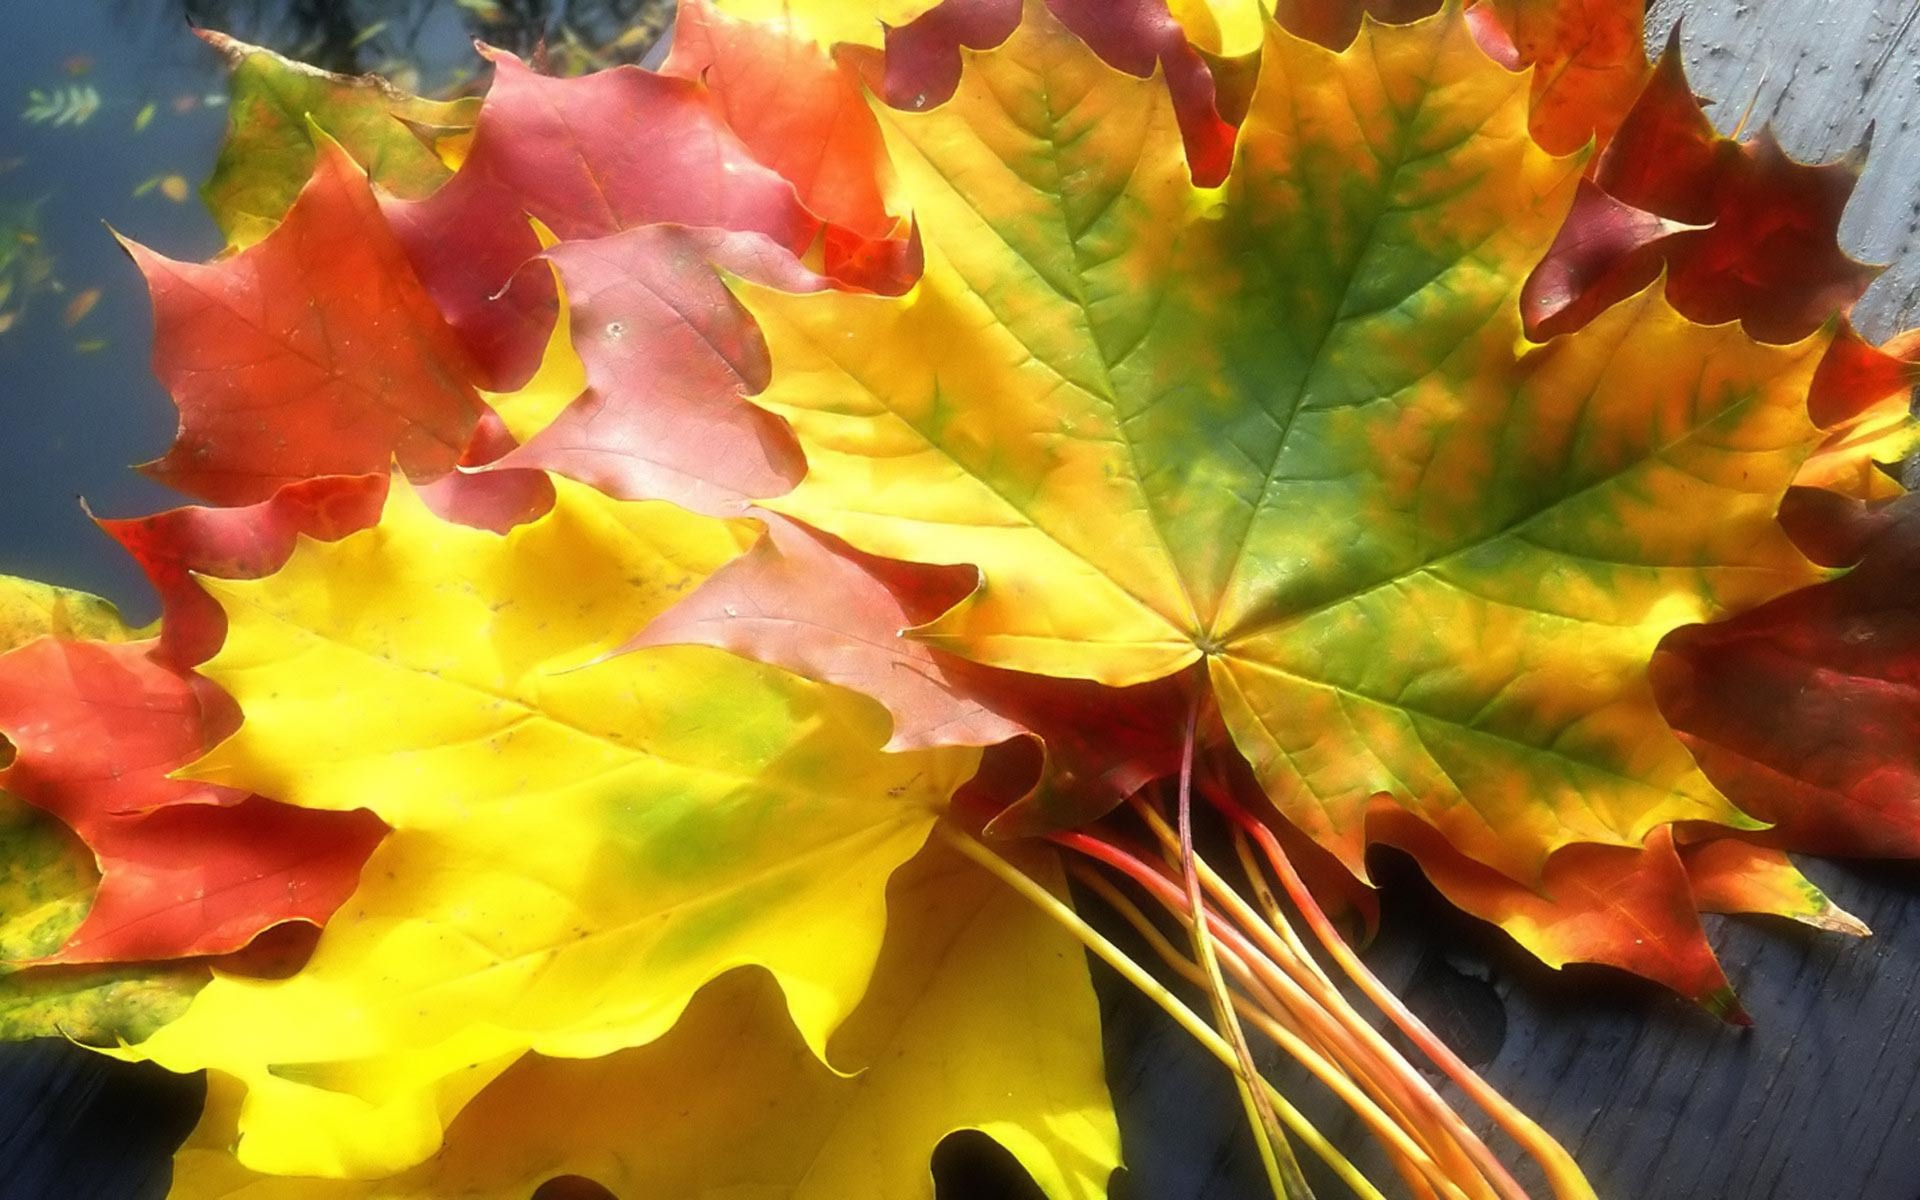 Download Colorful leaves 1440x900 Wallpaper · Download Colorful leaves 1680x1050 Wallpaper